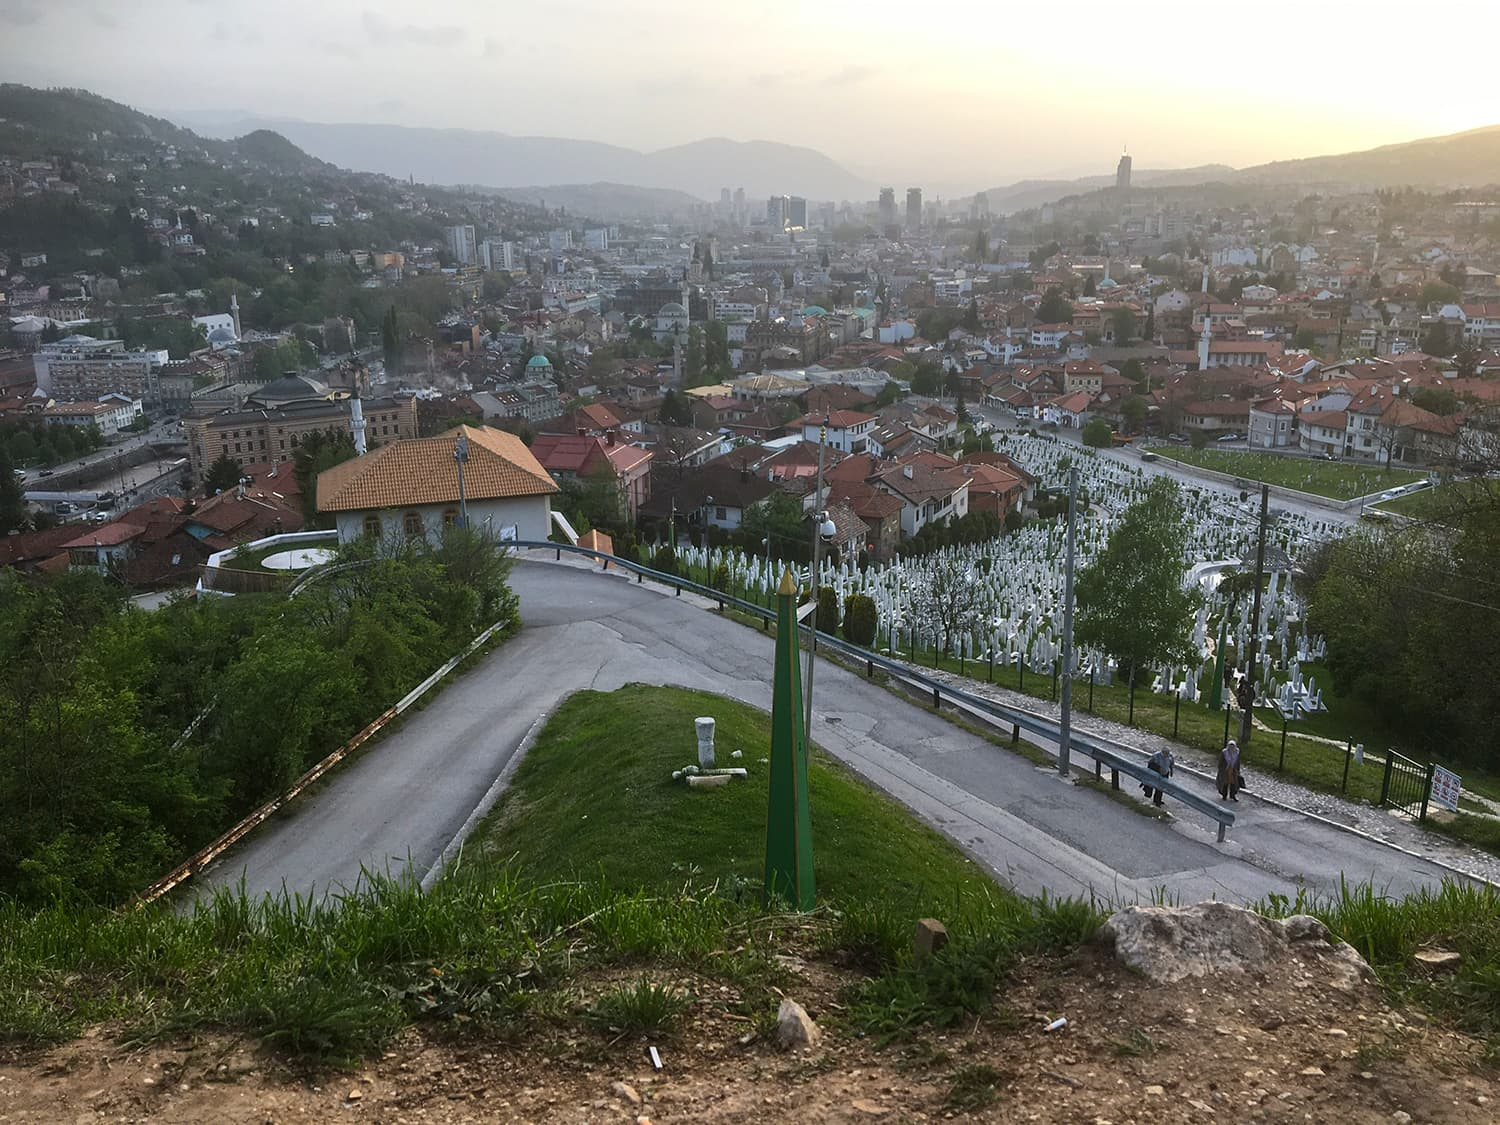 A view of Sarajevo from the mountains that surround it.